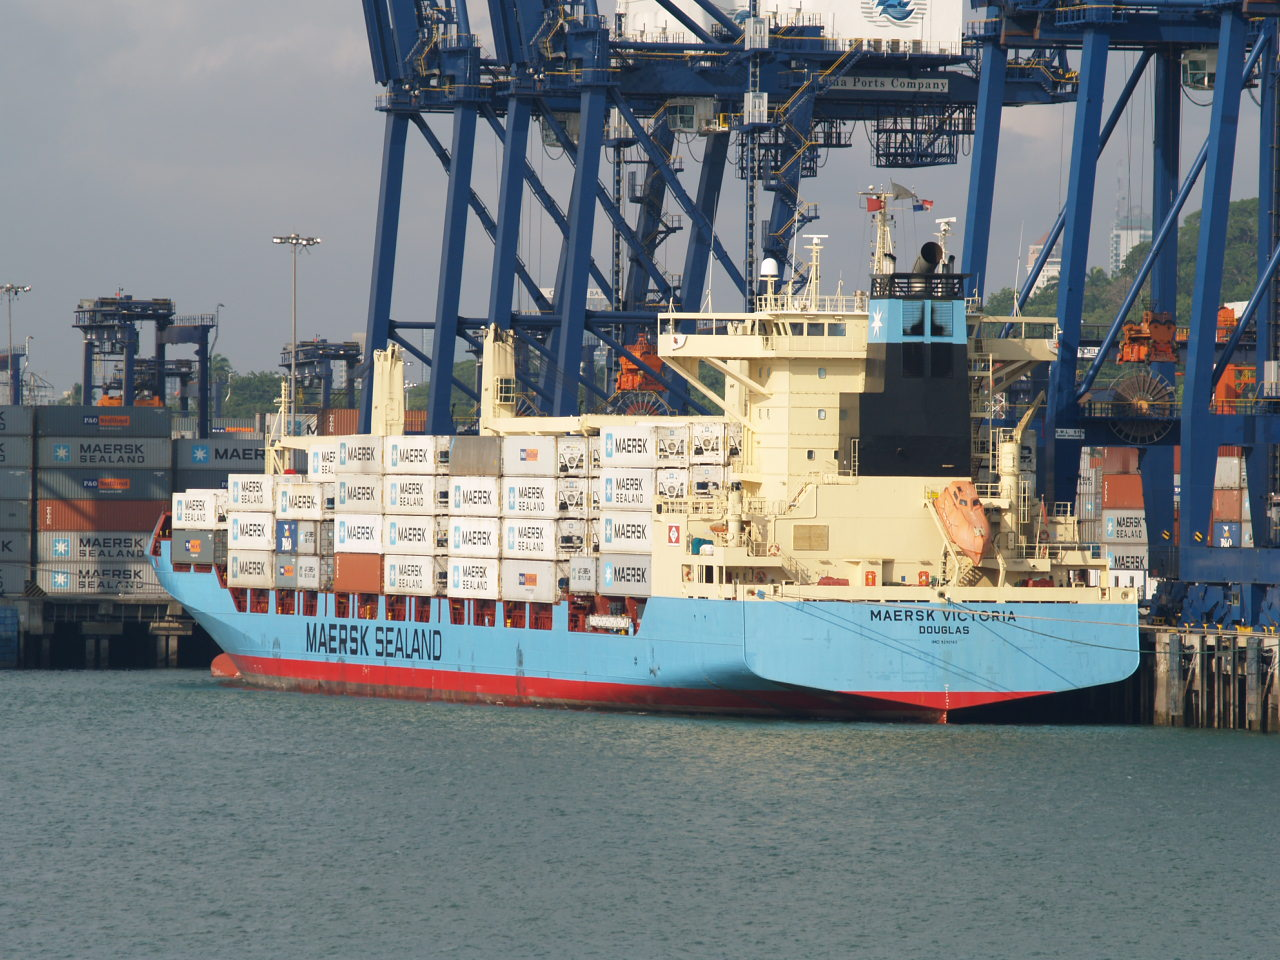 File:Maersk victoria container ship jpg - Wikimedia Commons